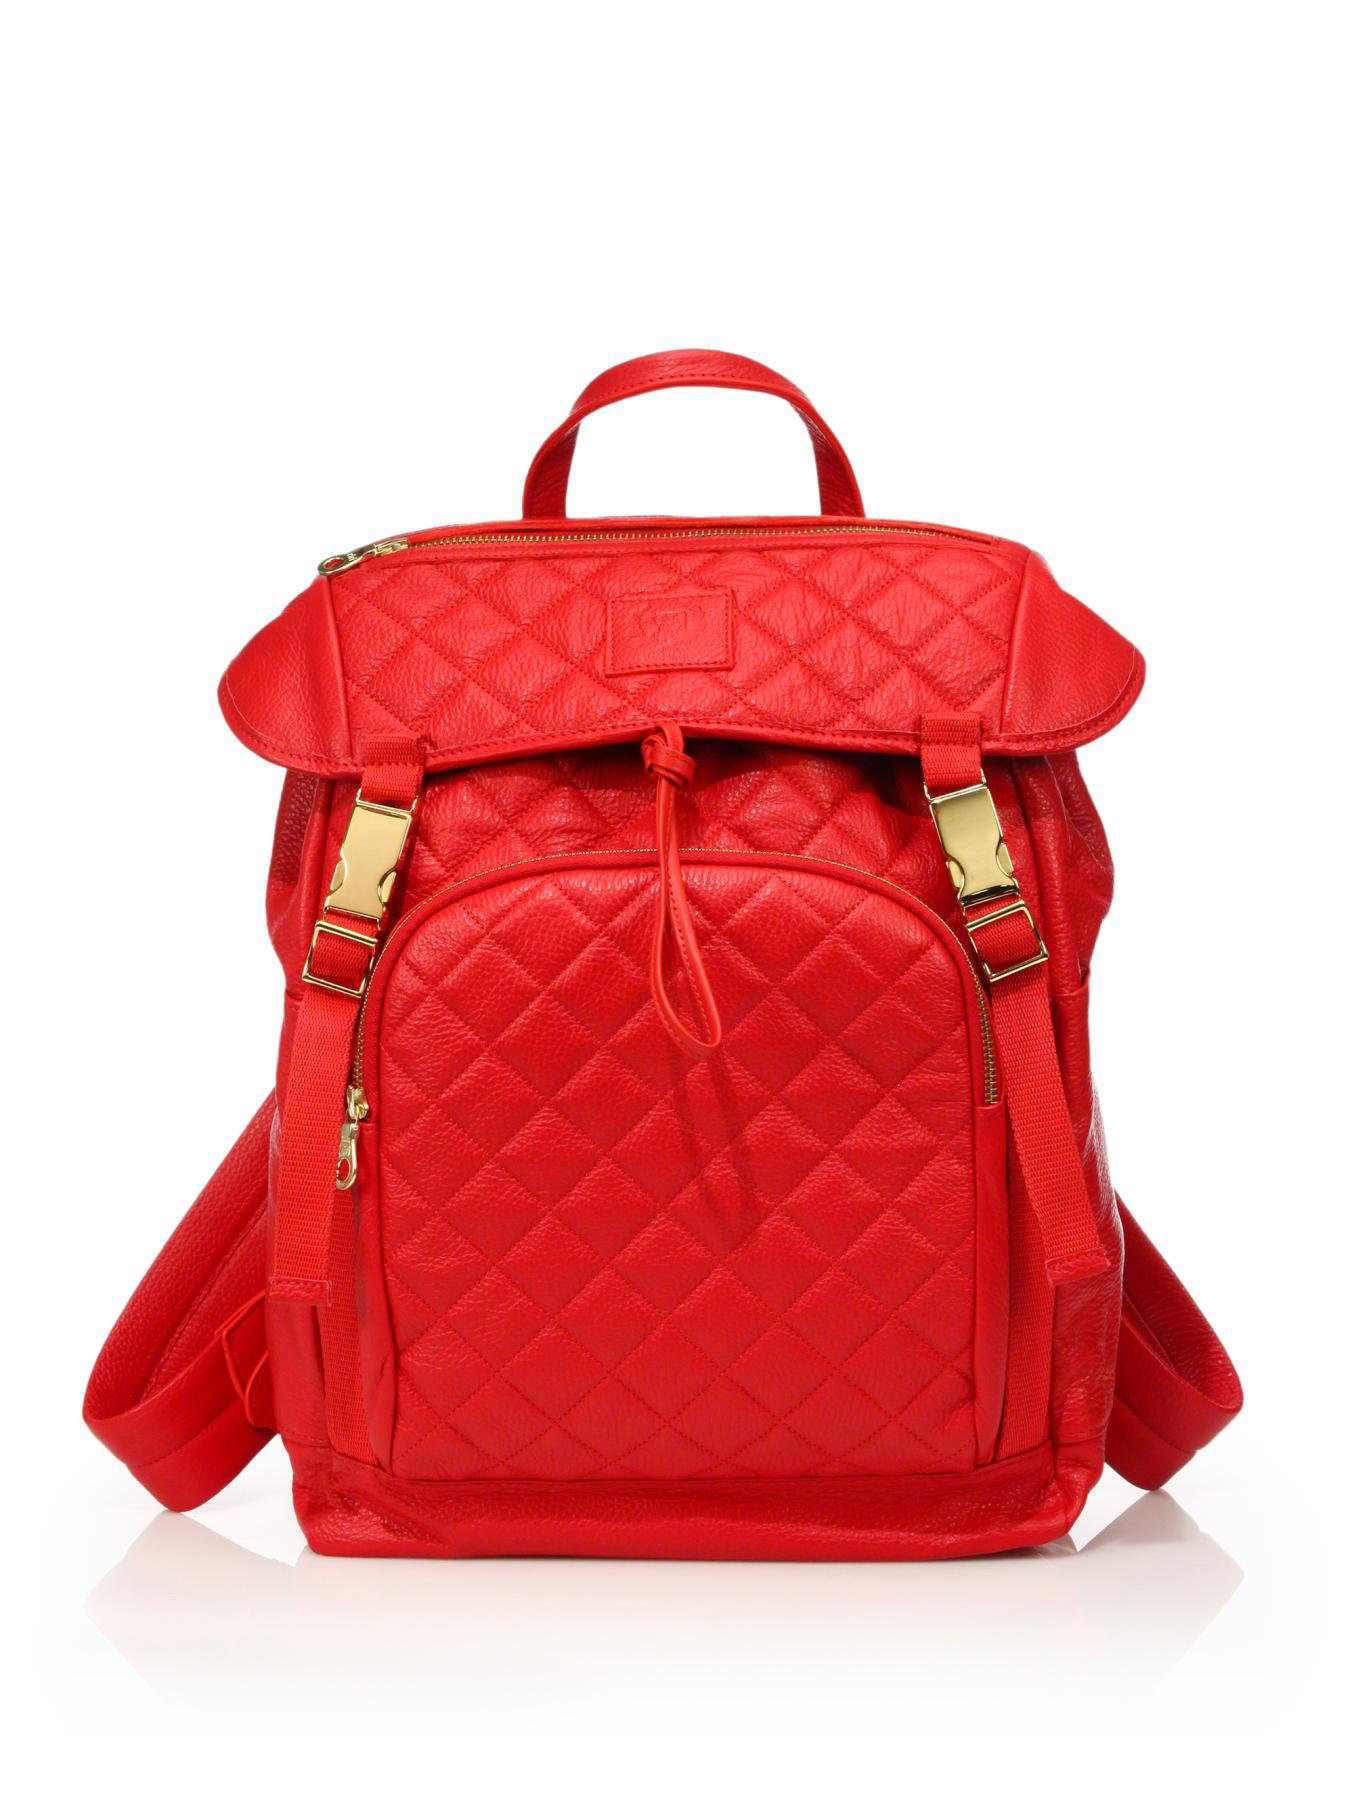 41c3d4fce ... dark red leather backpack purse bag like new m  5c9e51e915281229bde0a954; gallery ...